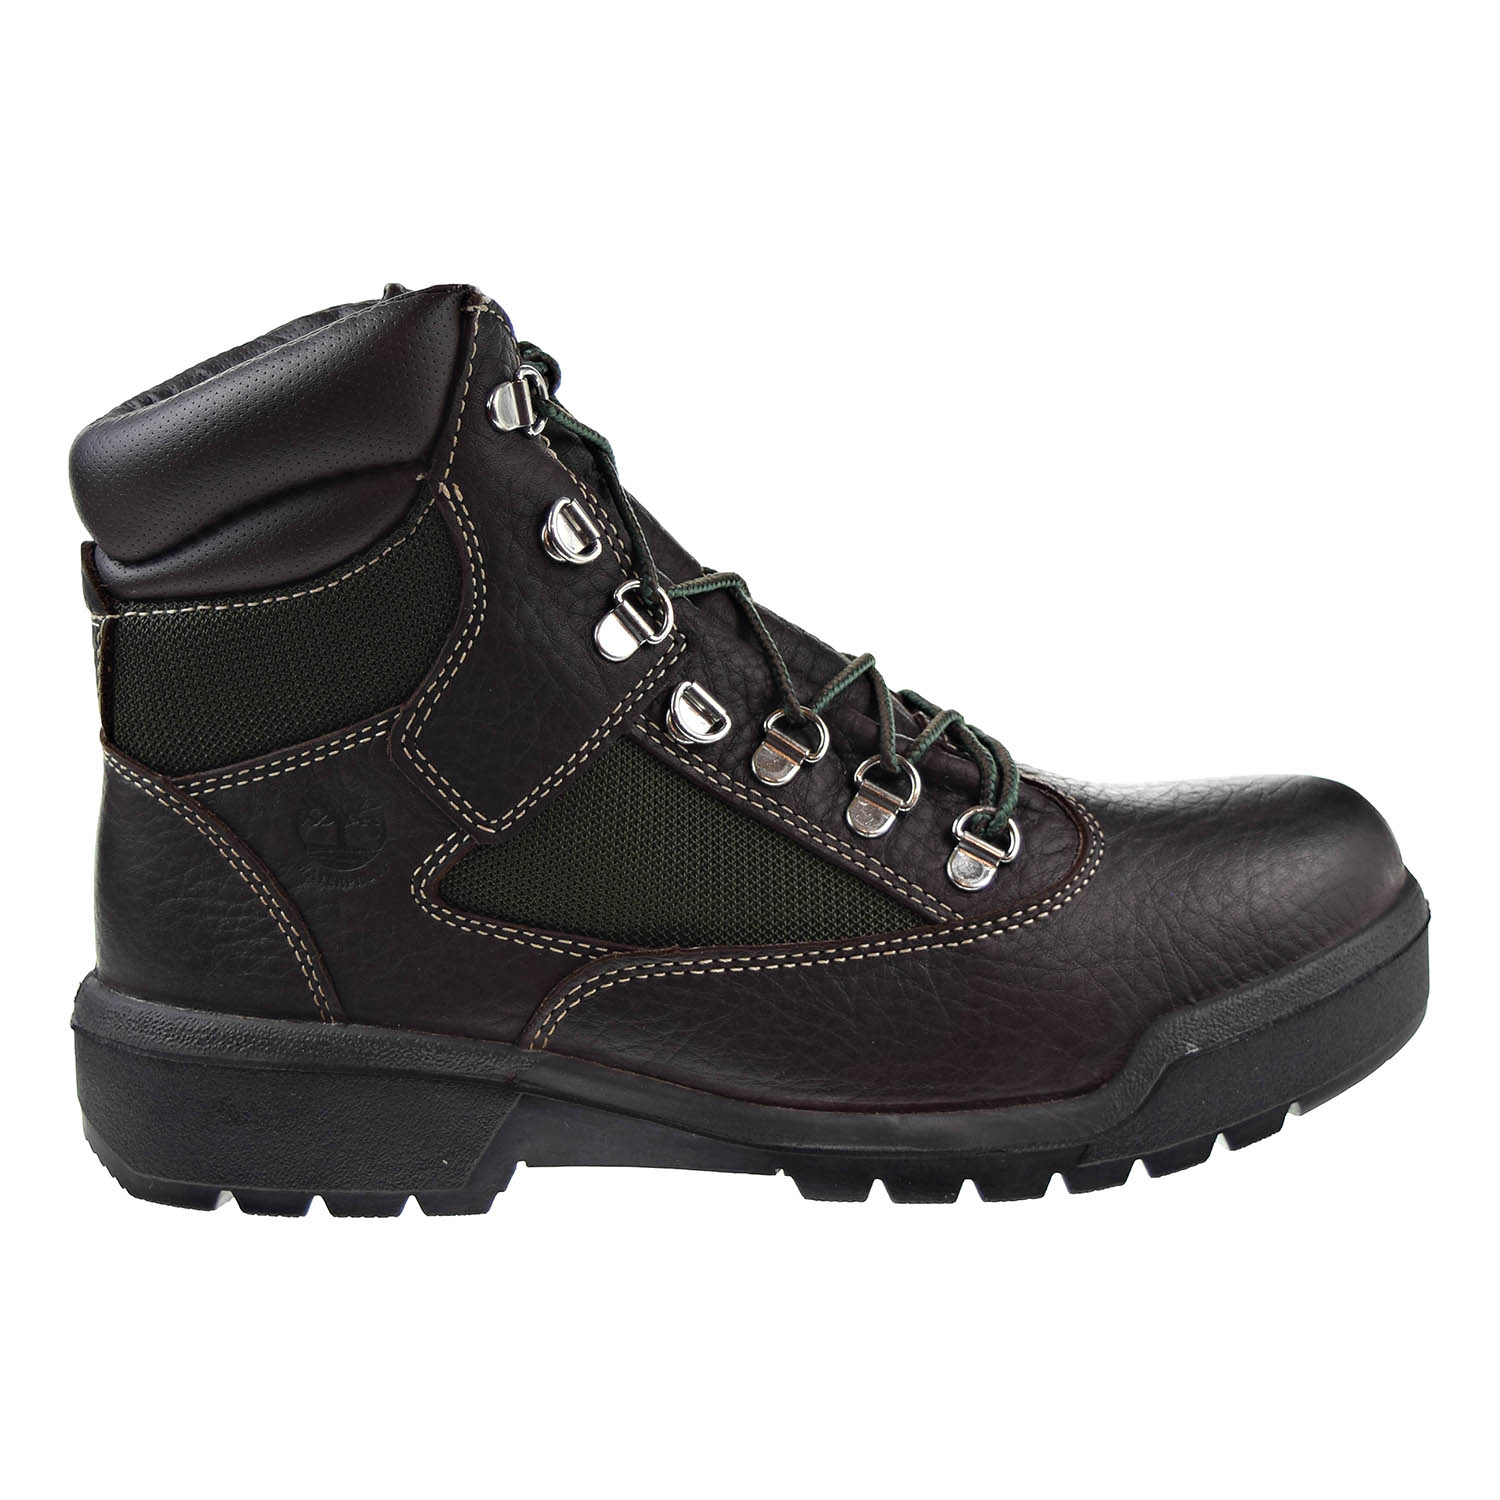 Timberland 6 Inch Field Waterproof Mens Boots Dark Brown tb0a1nlf by Timberland